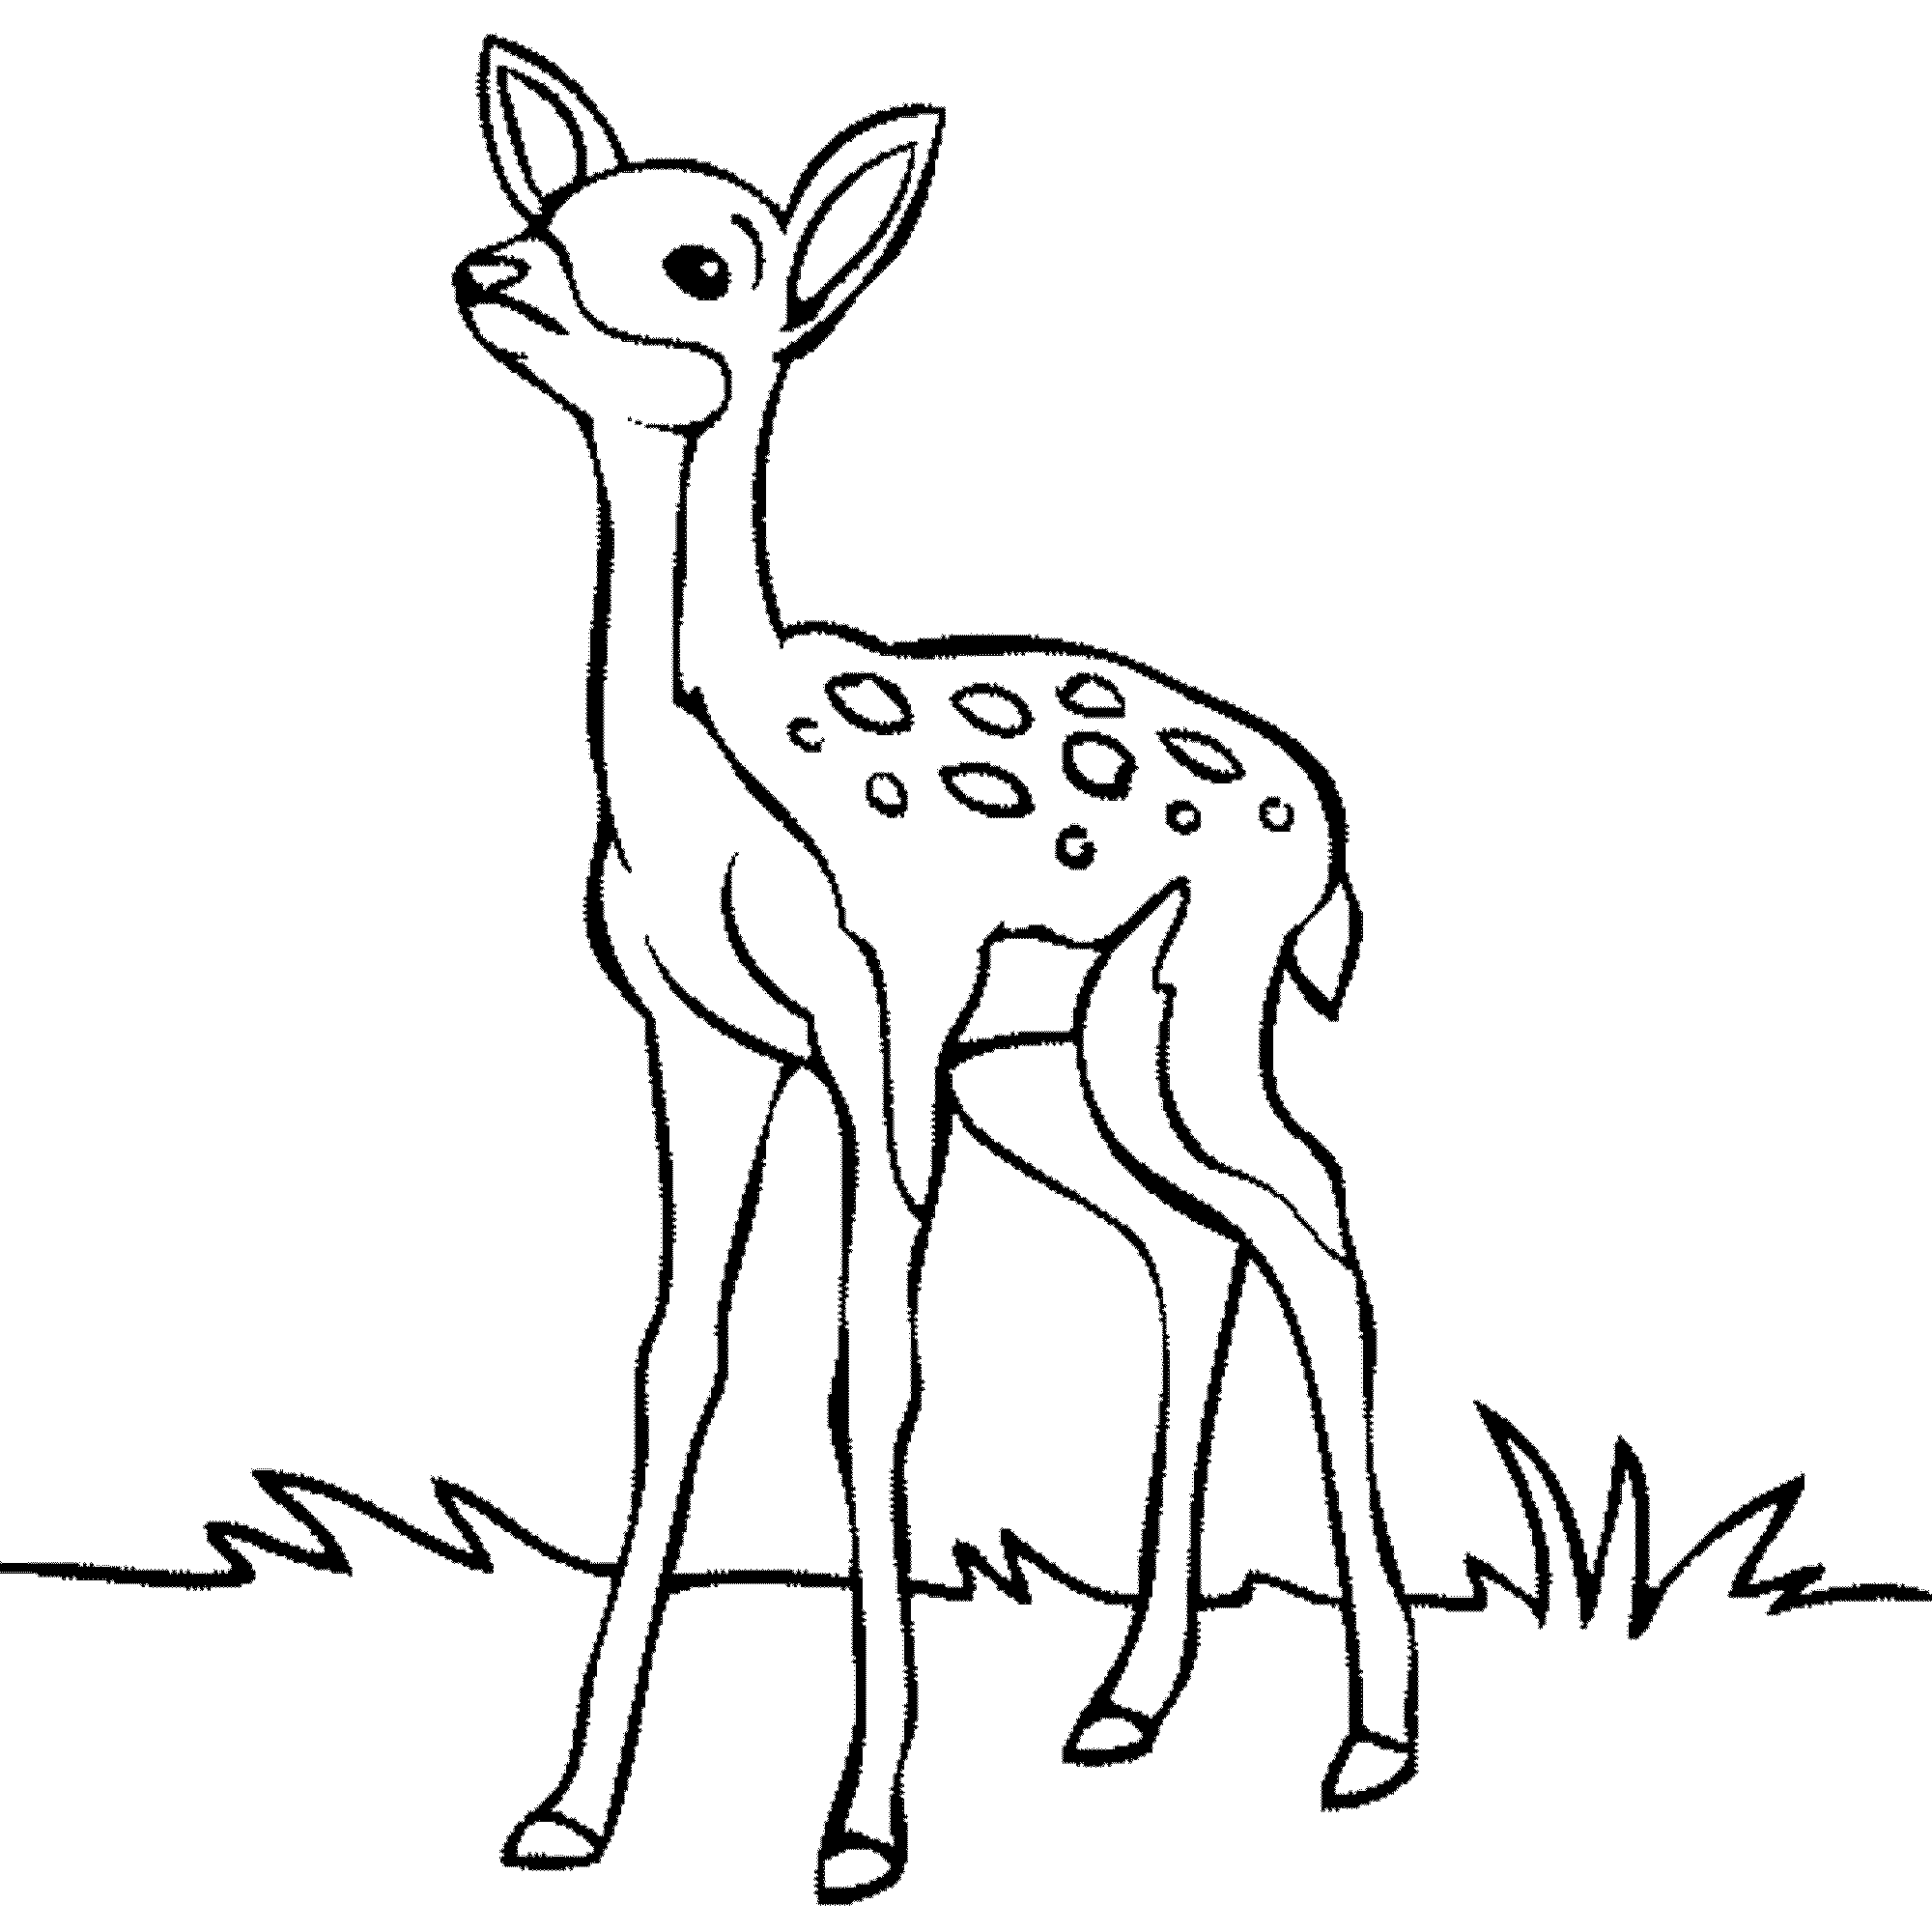 2000x2000 Coloring Pages Impressive Coloring Pages Draw A Deer Blacktail